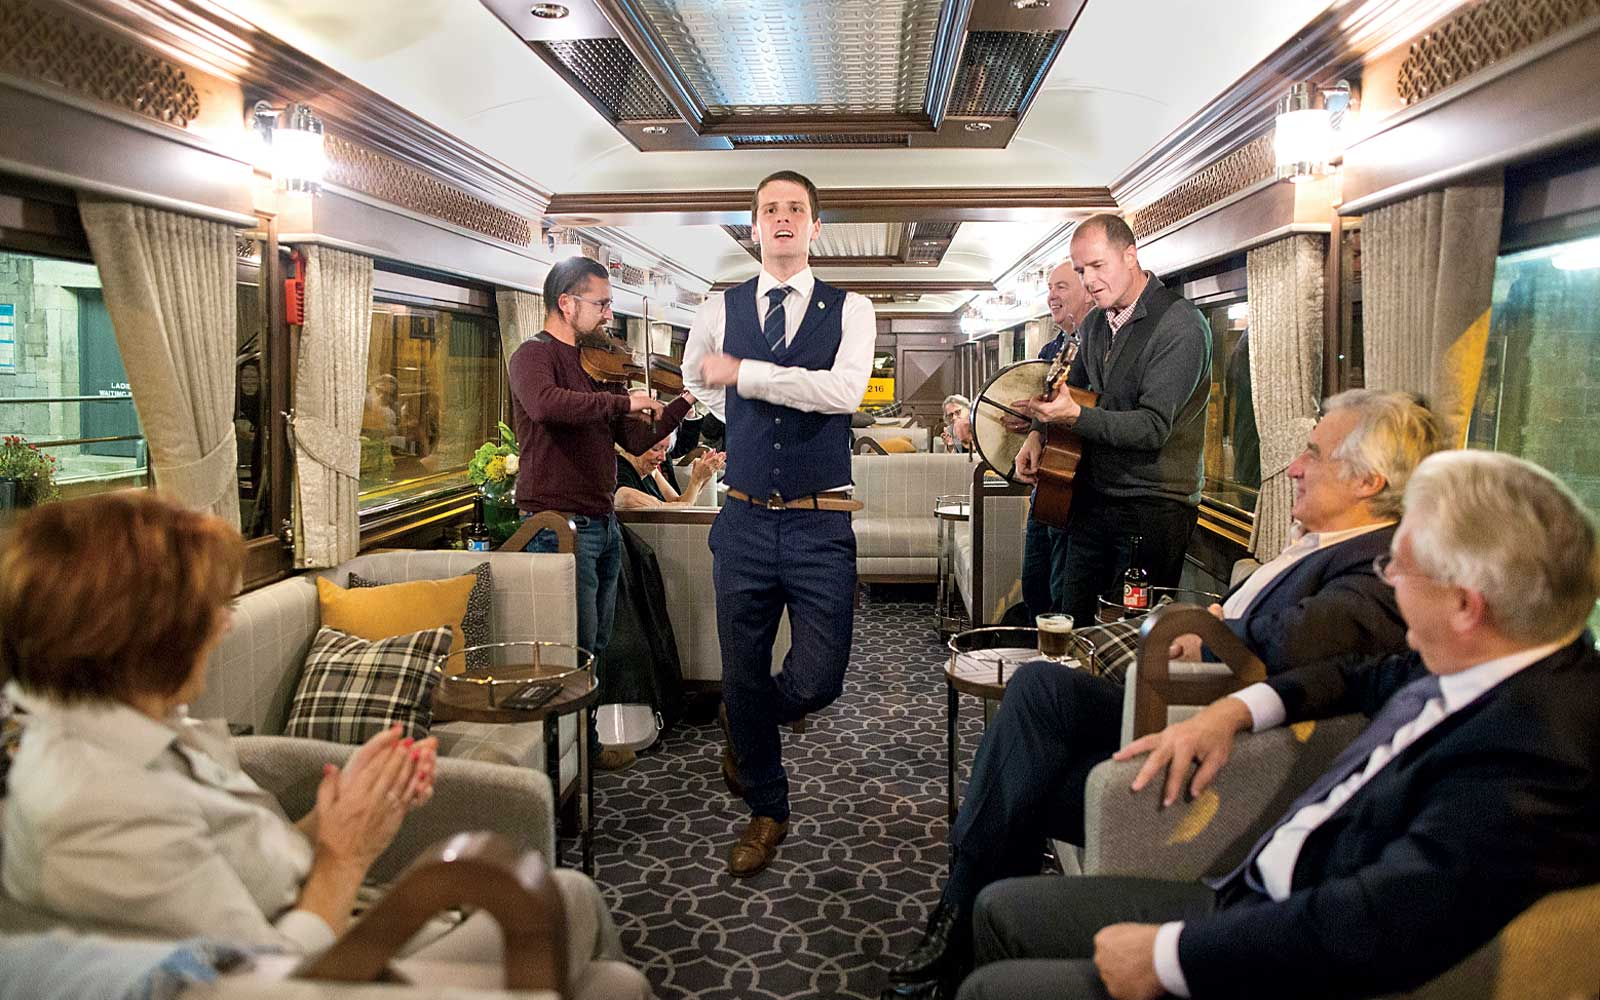 An Irish jig on board the Belmond Grand Hibernian Train